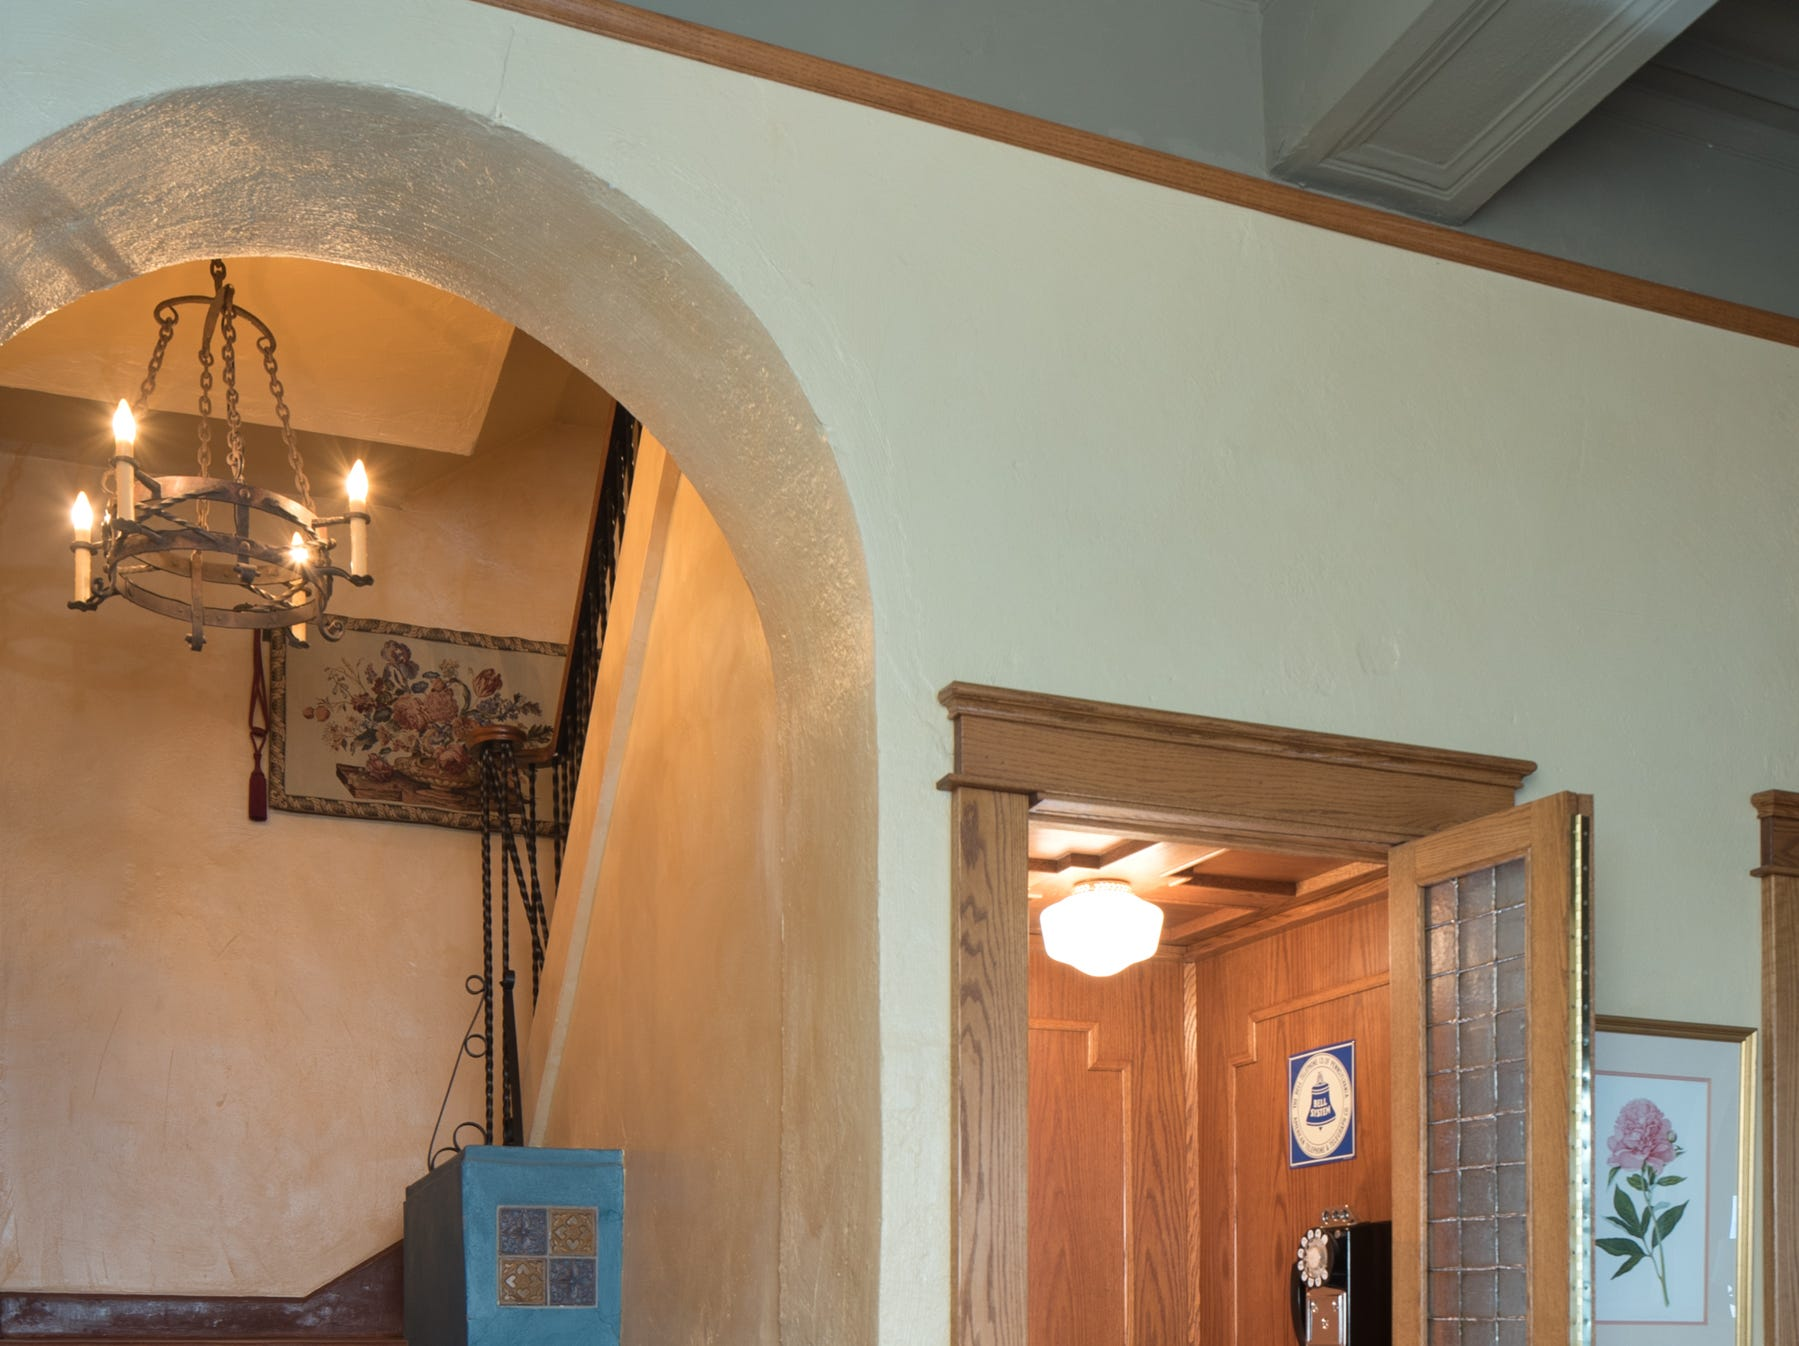 The staircase to the guest wing is seen in the 100-year-old former Little Daisy Hotel in Jerome, which was later turned into a single-family home and is now on the market.